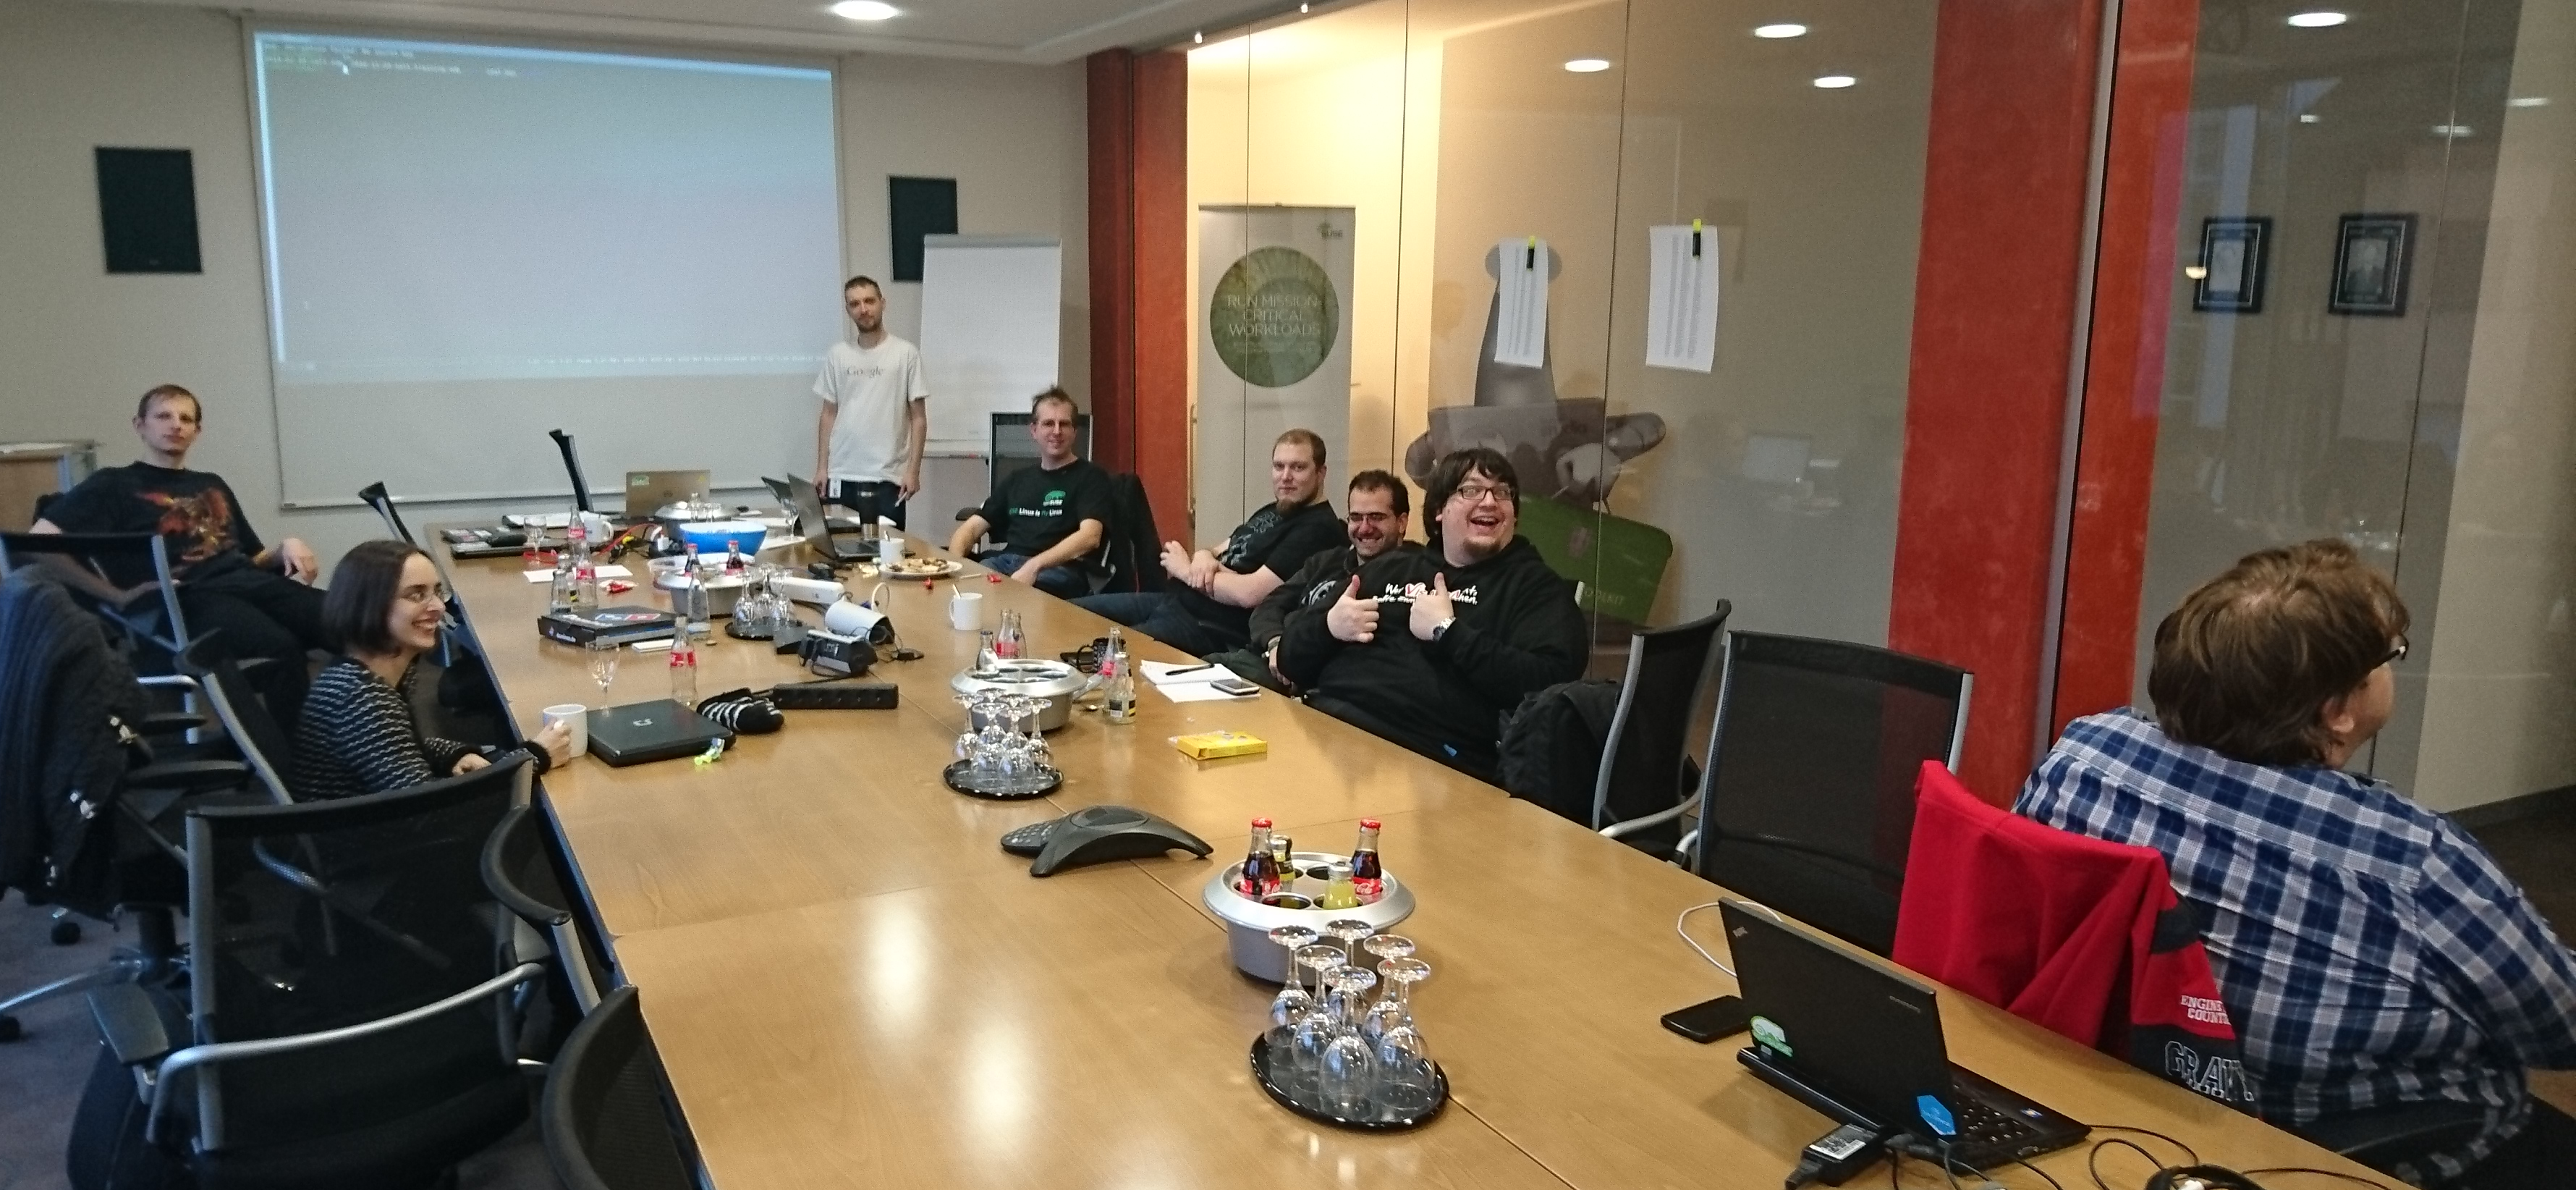 Picture from the meeting with some openSUSE Heroes discussing